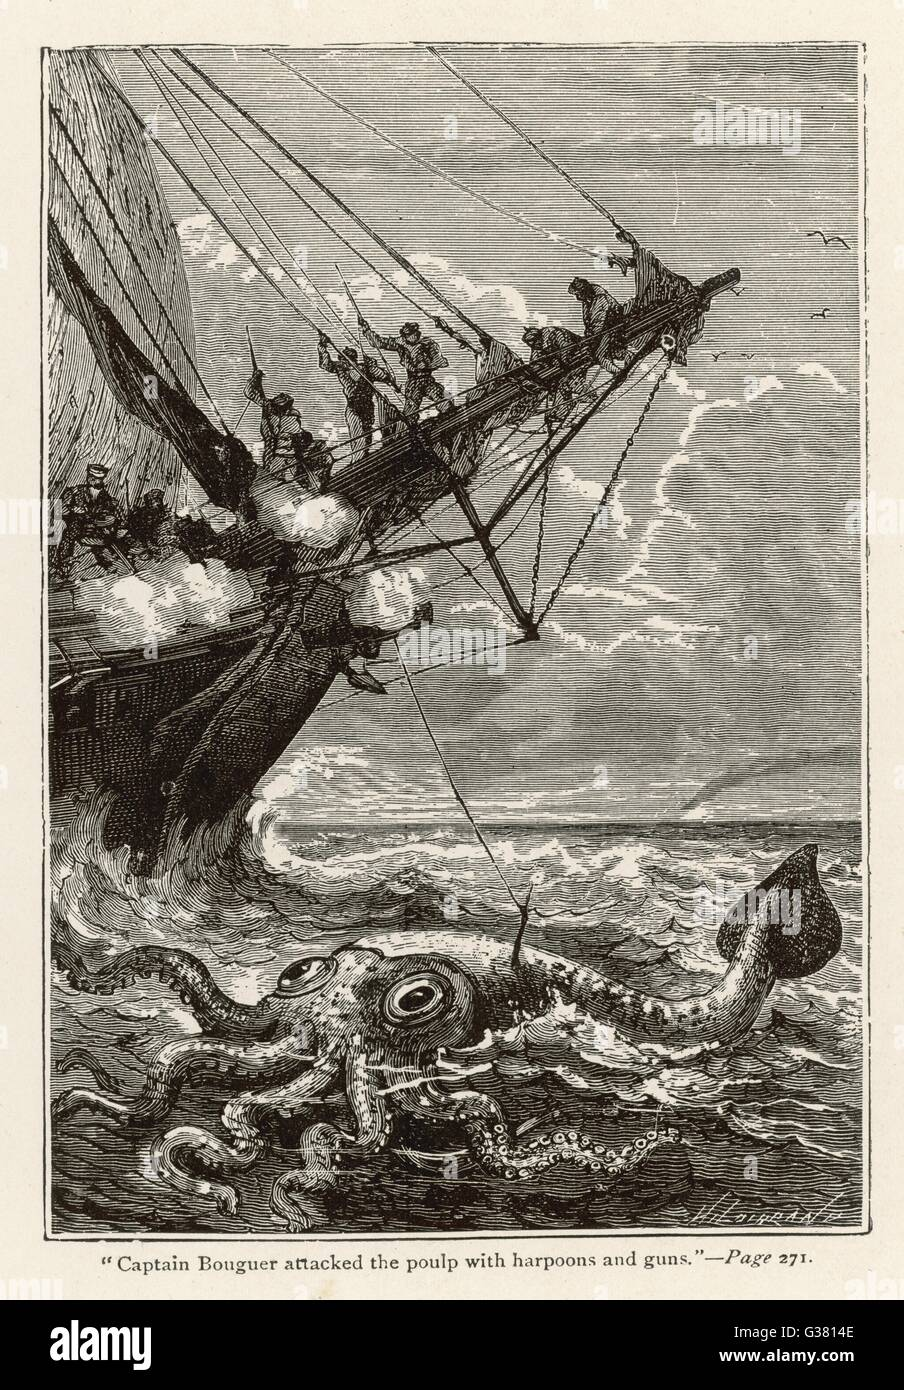 '20,000 LIEUES SOUS LES MERS' [20 000 leagues under the sea]  Attacking a giant squid       Date: 1870 - Stock Image